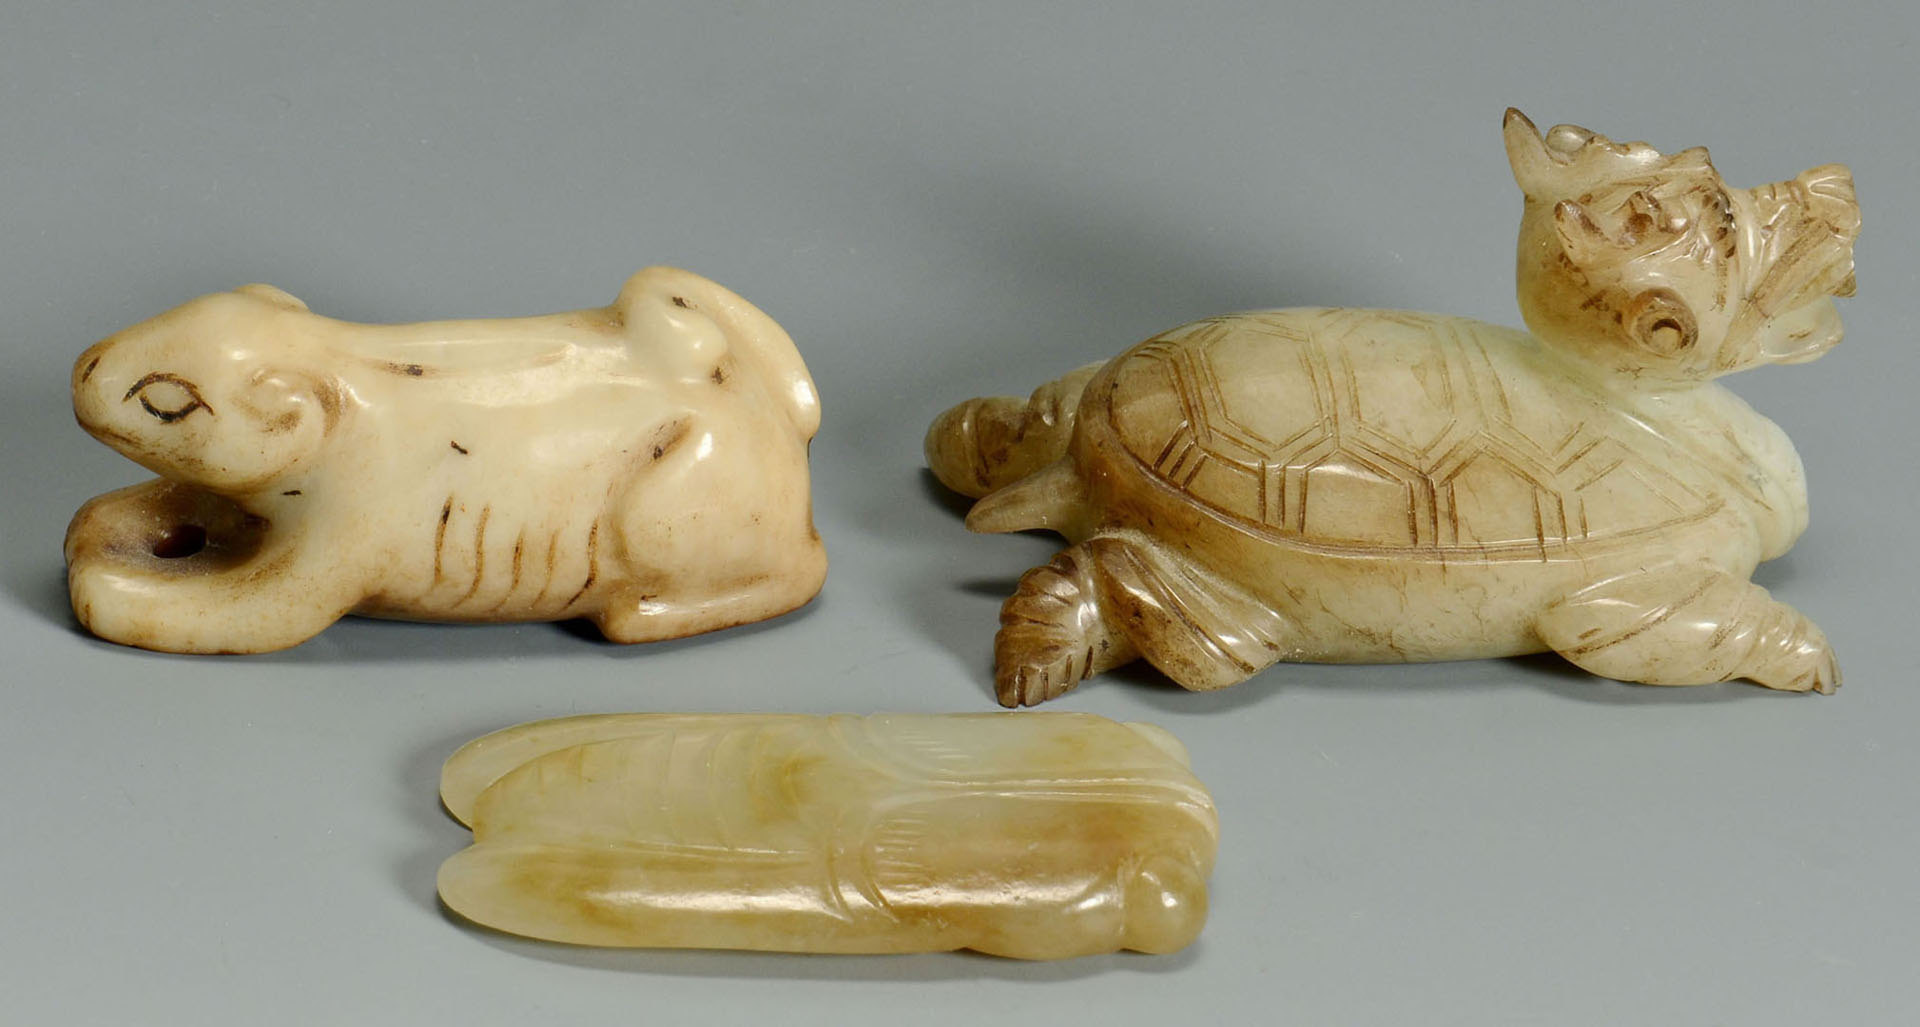 Lot 216: 5 pcs Chinese carved jade: cup, dish, animal figur